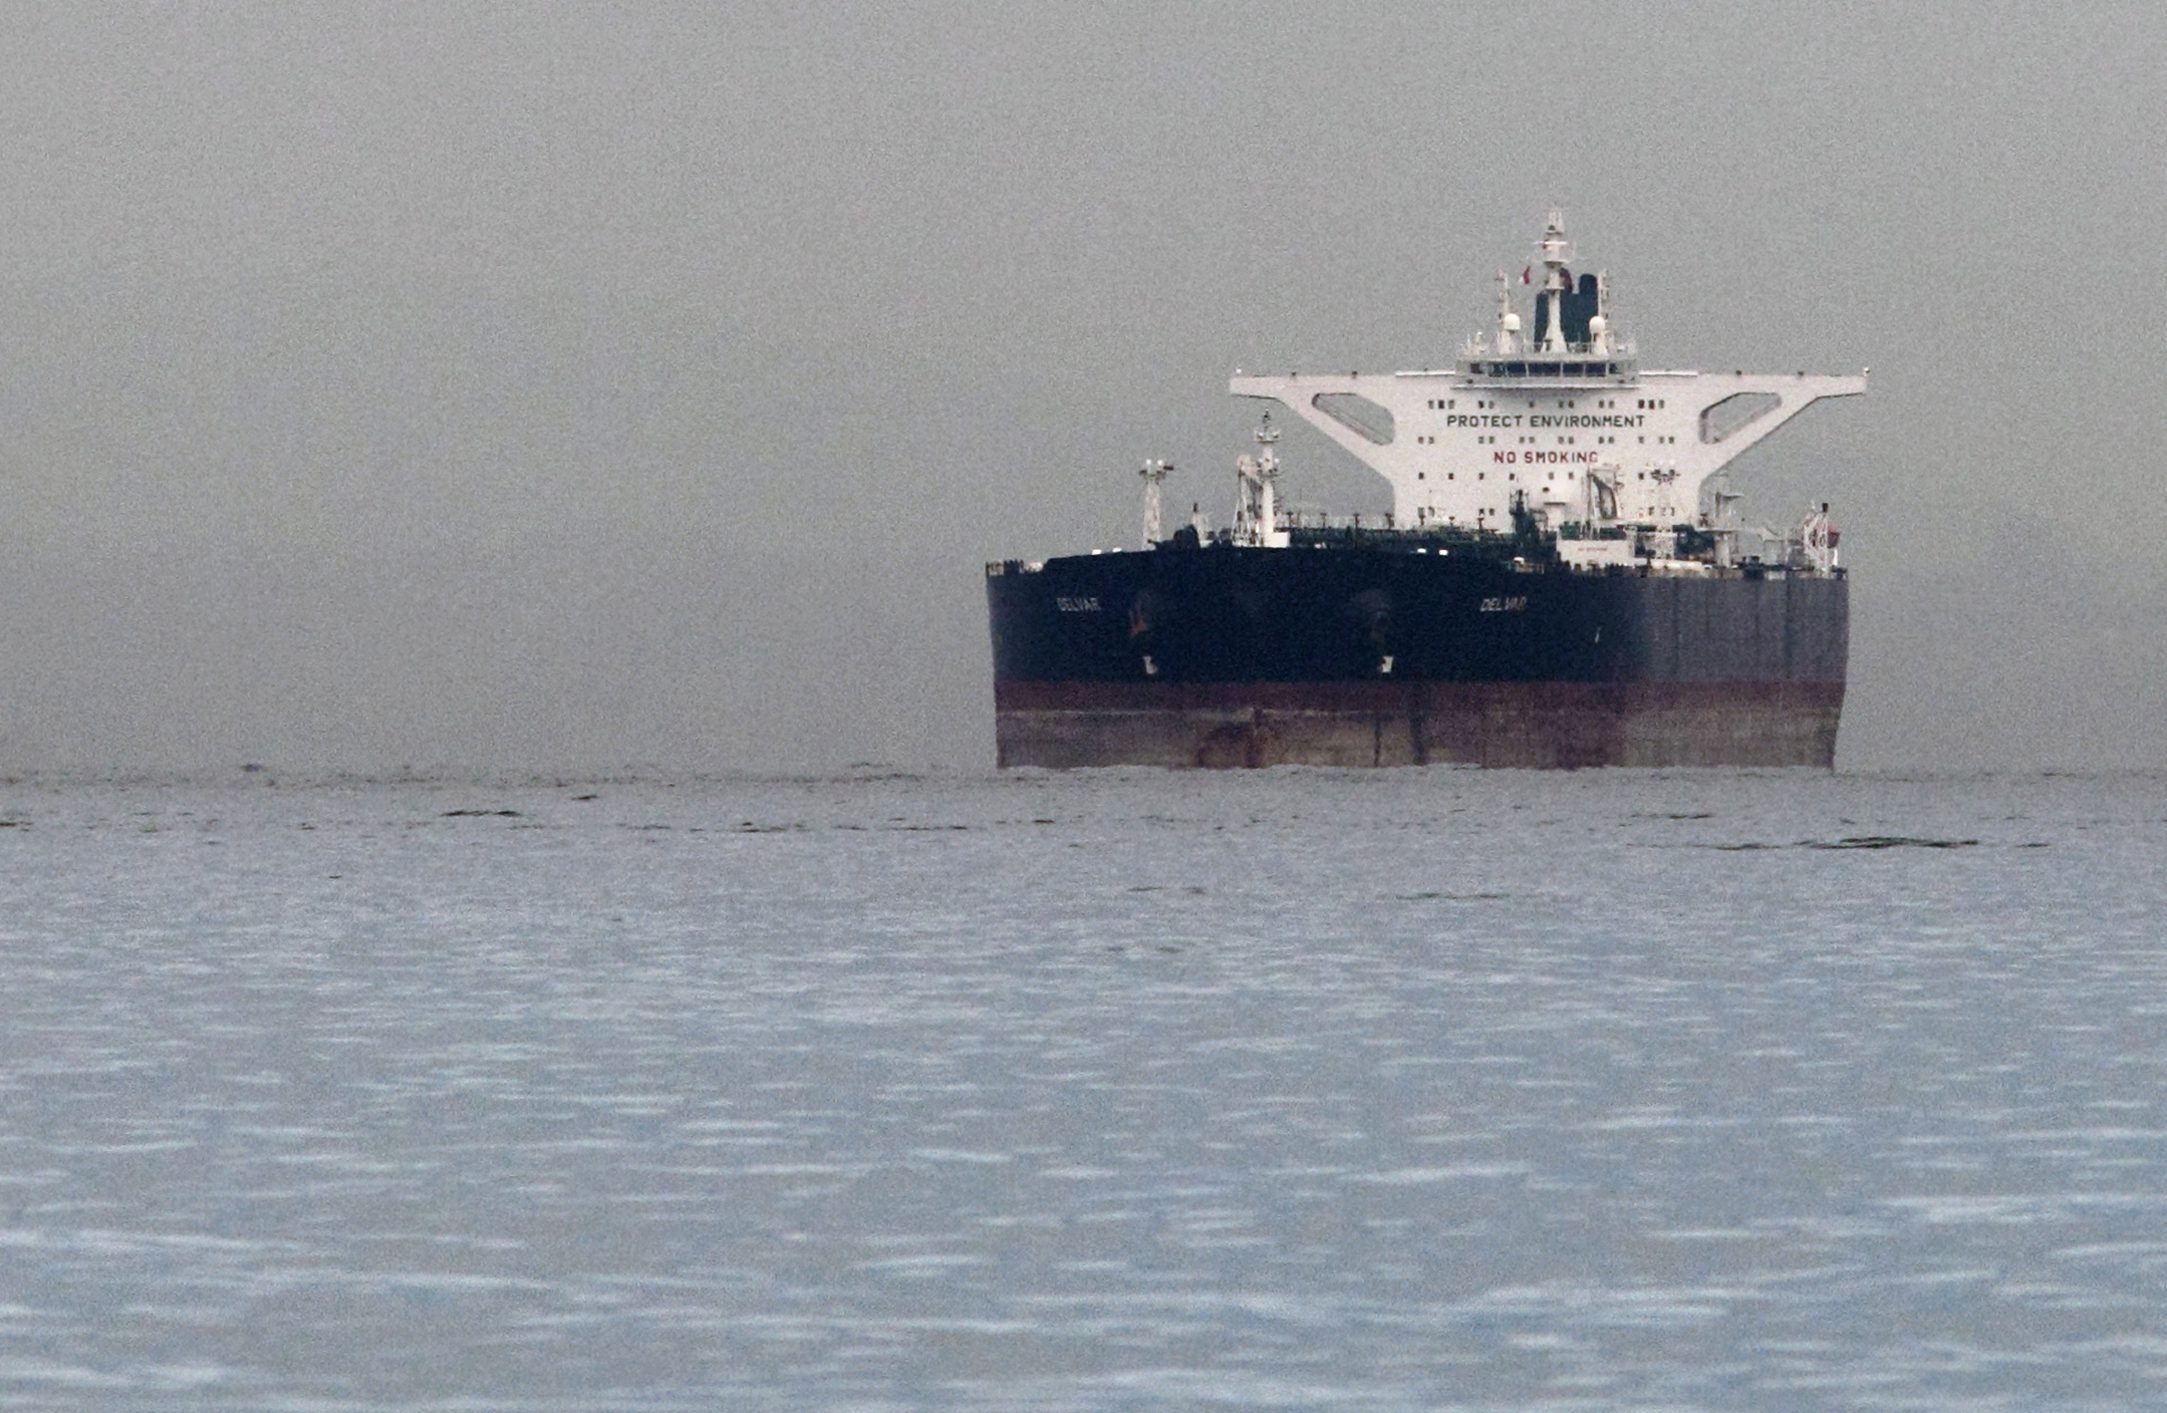 "Malta-flagged Iranian crude oil supertanker ""Delvar"" is seen anchored off Singapore March 1, 2012. Western trade sanctions against Iran are strangling its oil exports even before they go into effect, a U.S. advisory body has found, amid warnings that any shortages will only push up crude prices and strain a weak global economy."